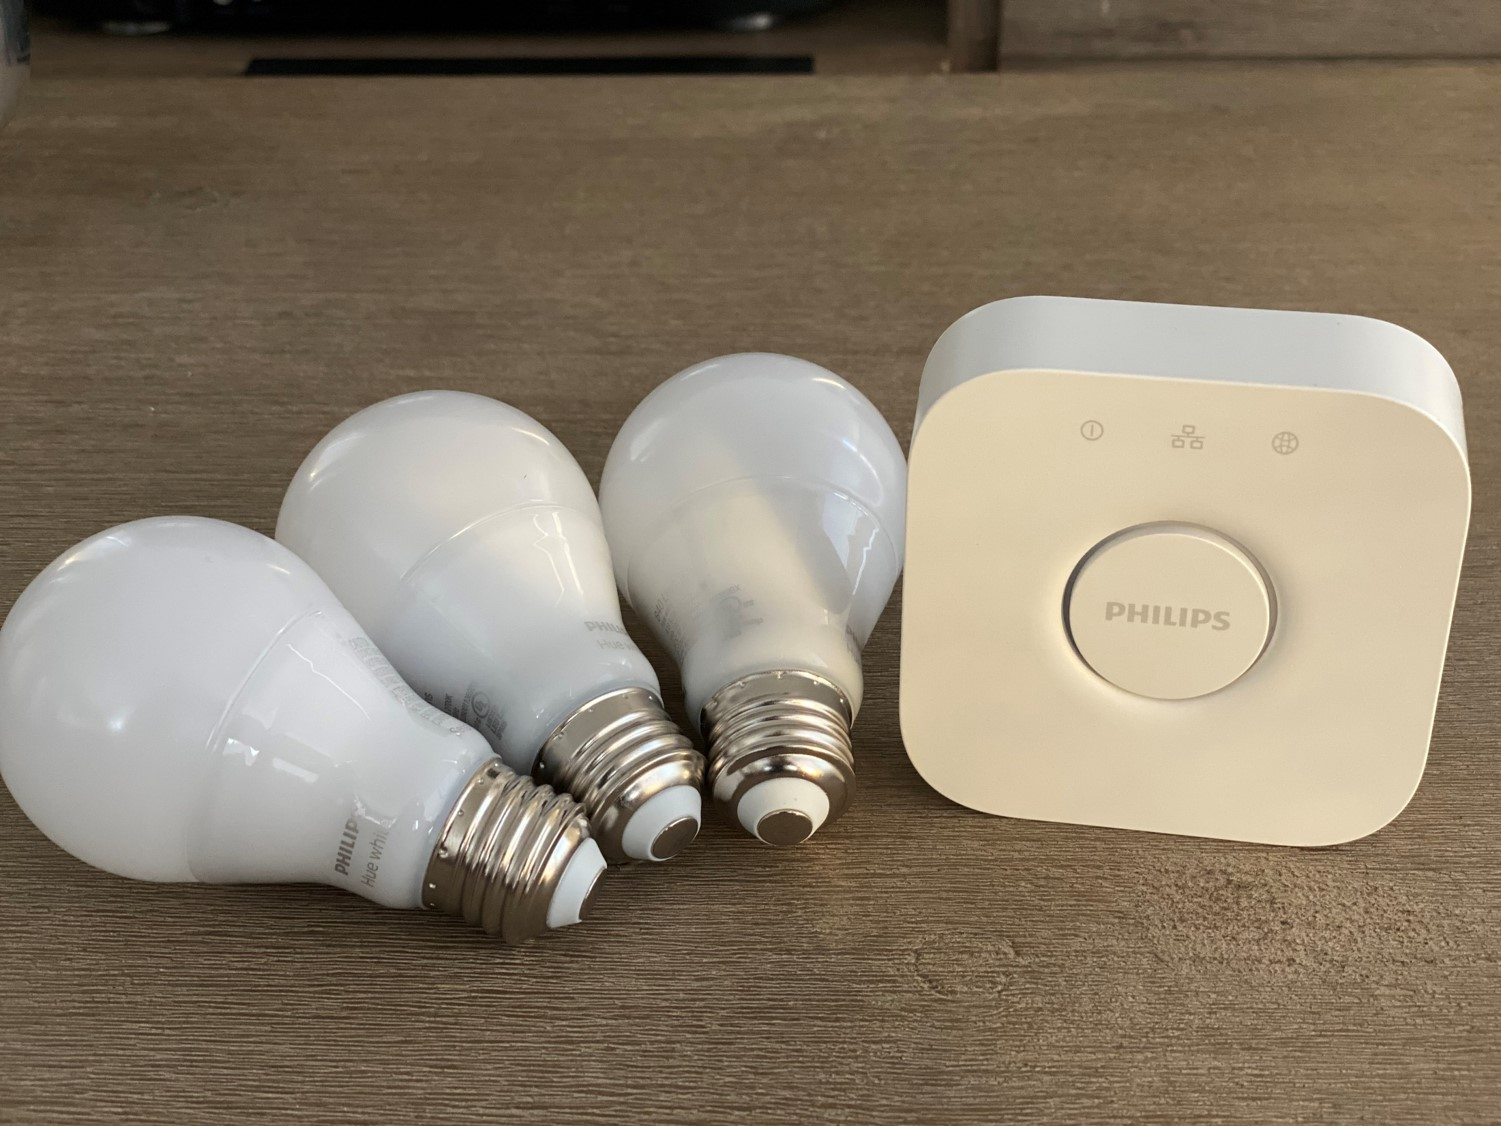 Philips Hue Hub and White Globes